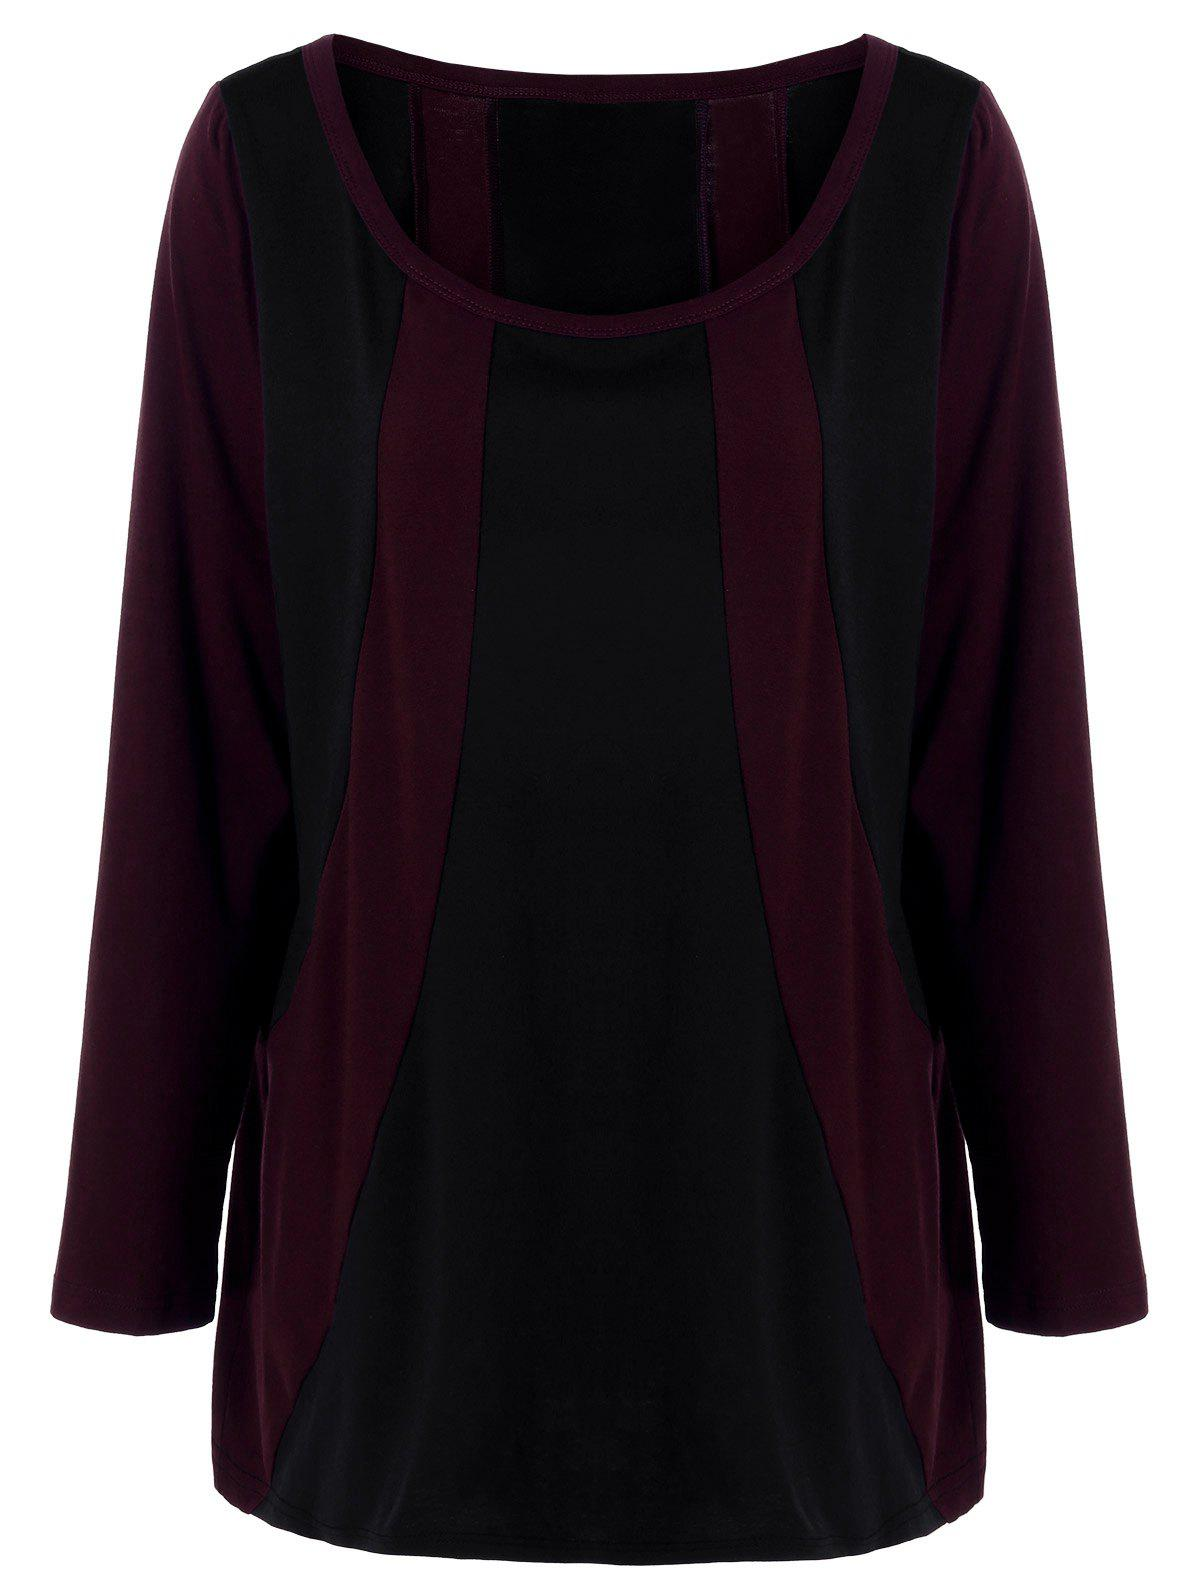 Buy Plus Size Convertible Collar Two Tone T-Shirt RED/BLACK